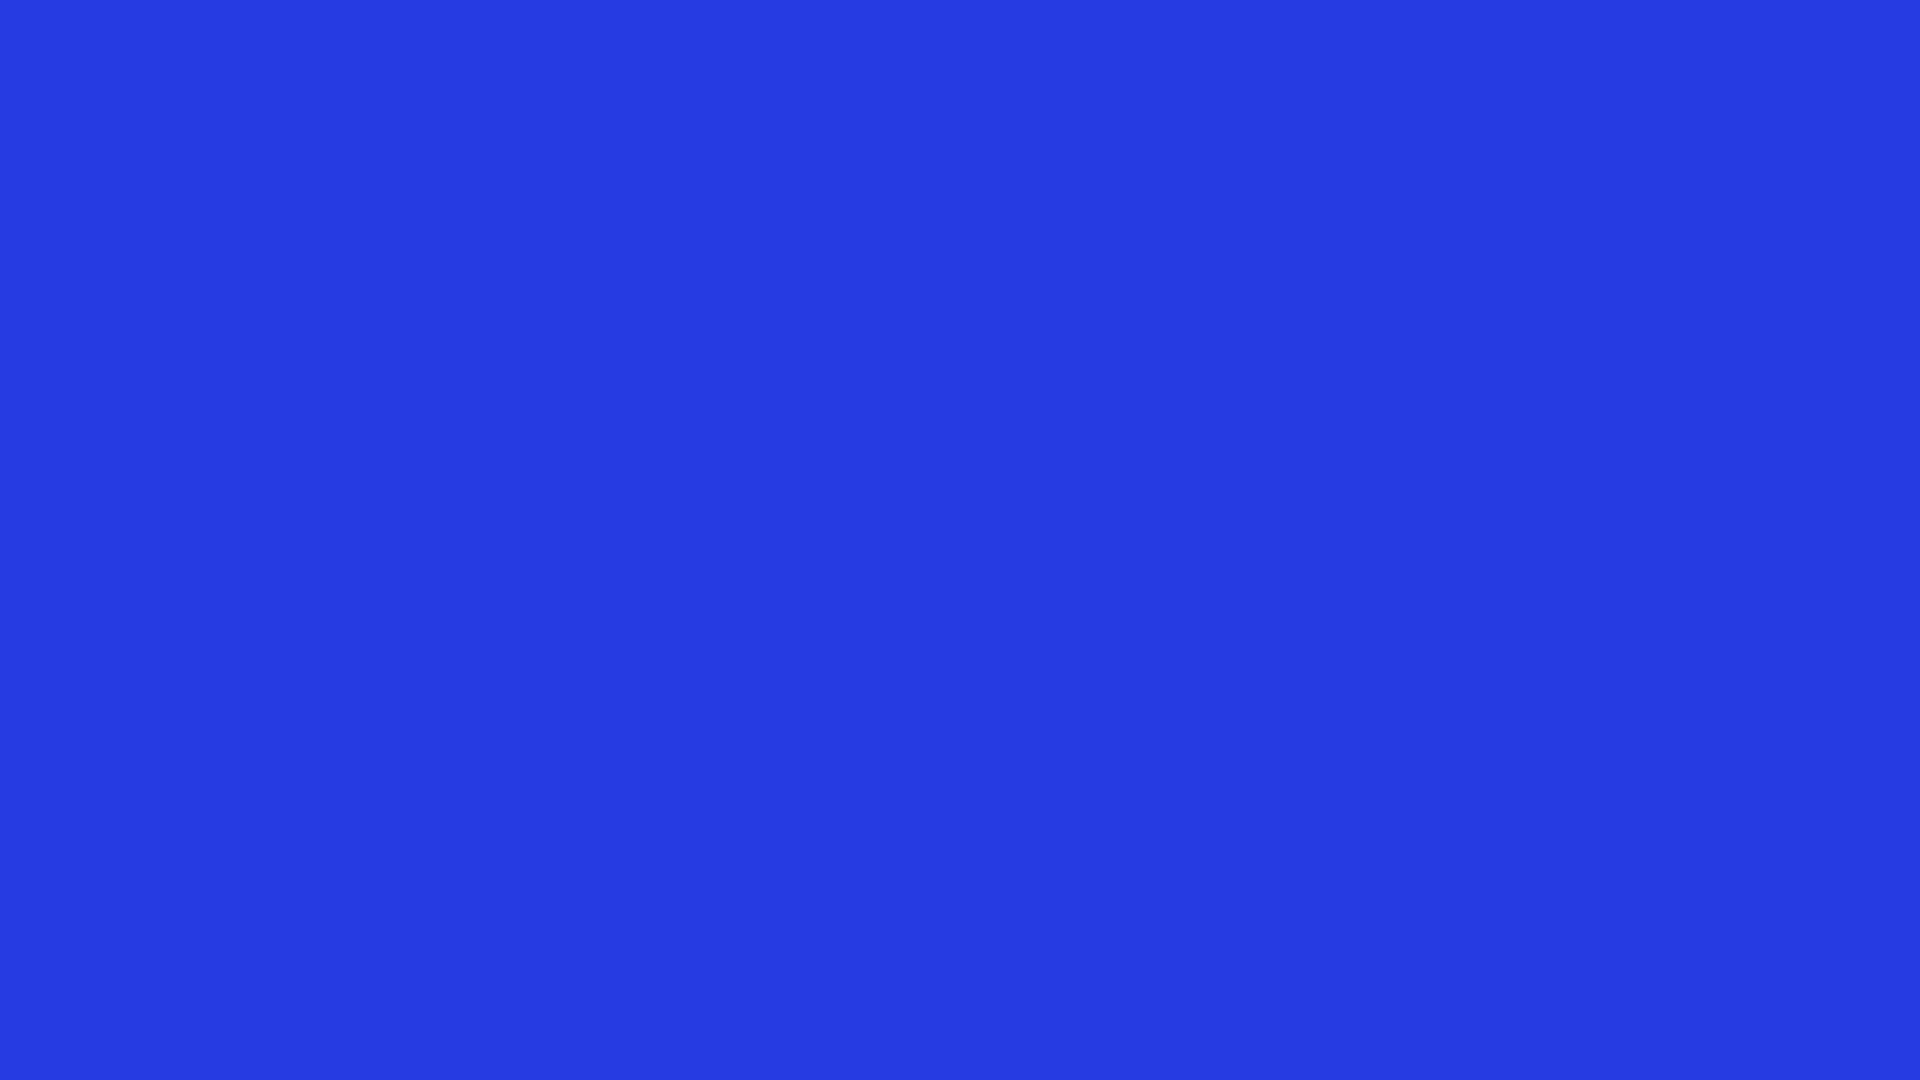 1920x1080 Palatinate Blue Solid Color Background